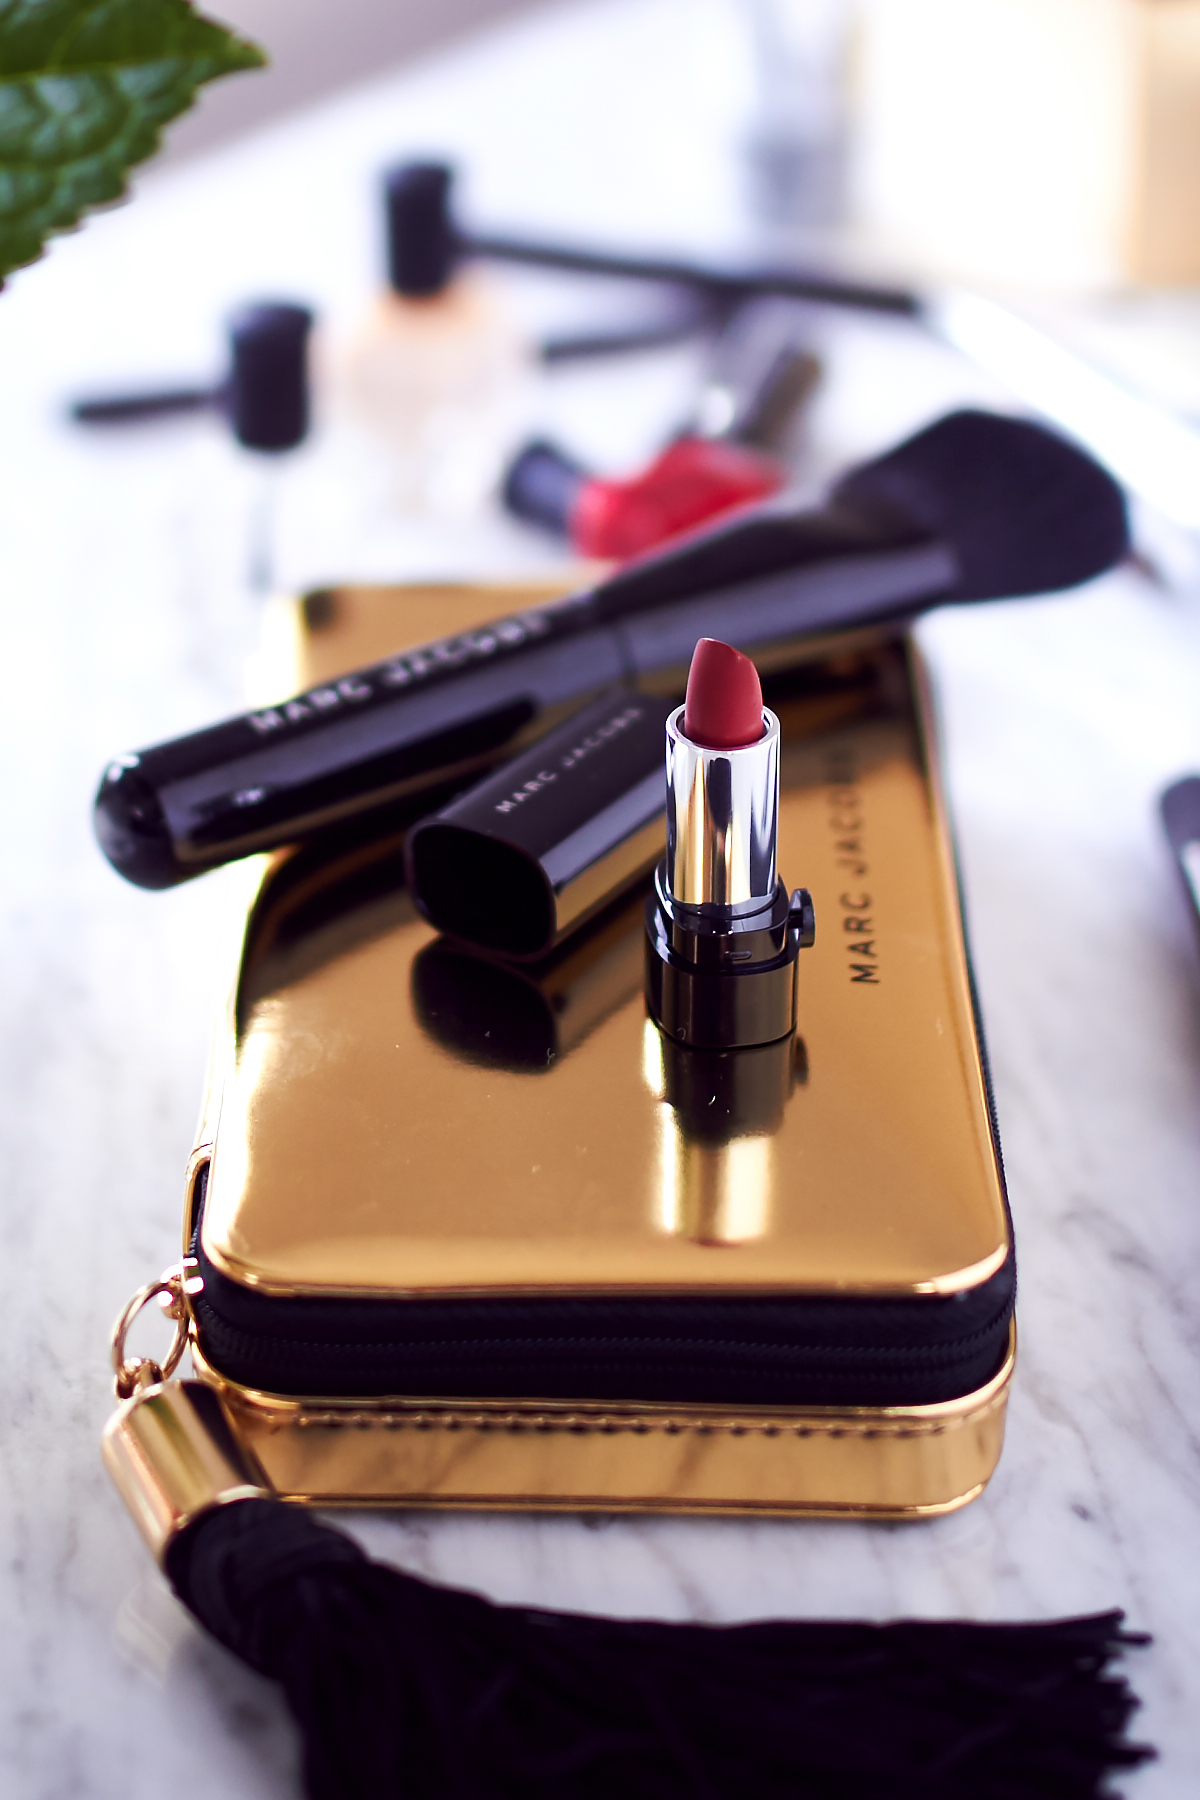 Neiman Marcus Holiday Gifts, Beauty, Marc Jacobs Lipstick